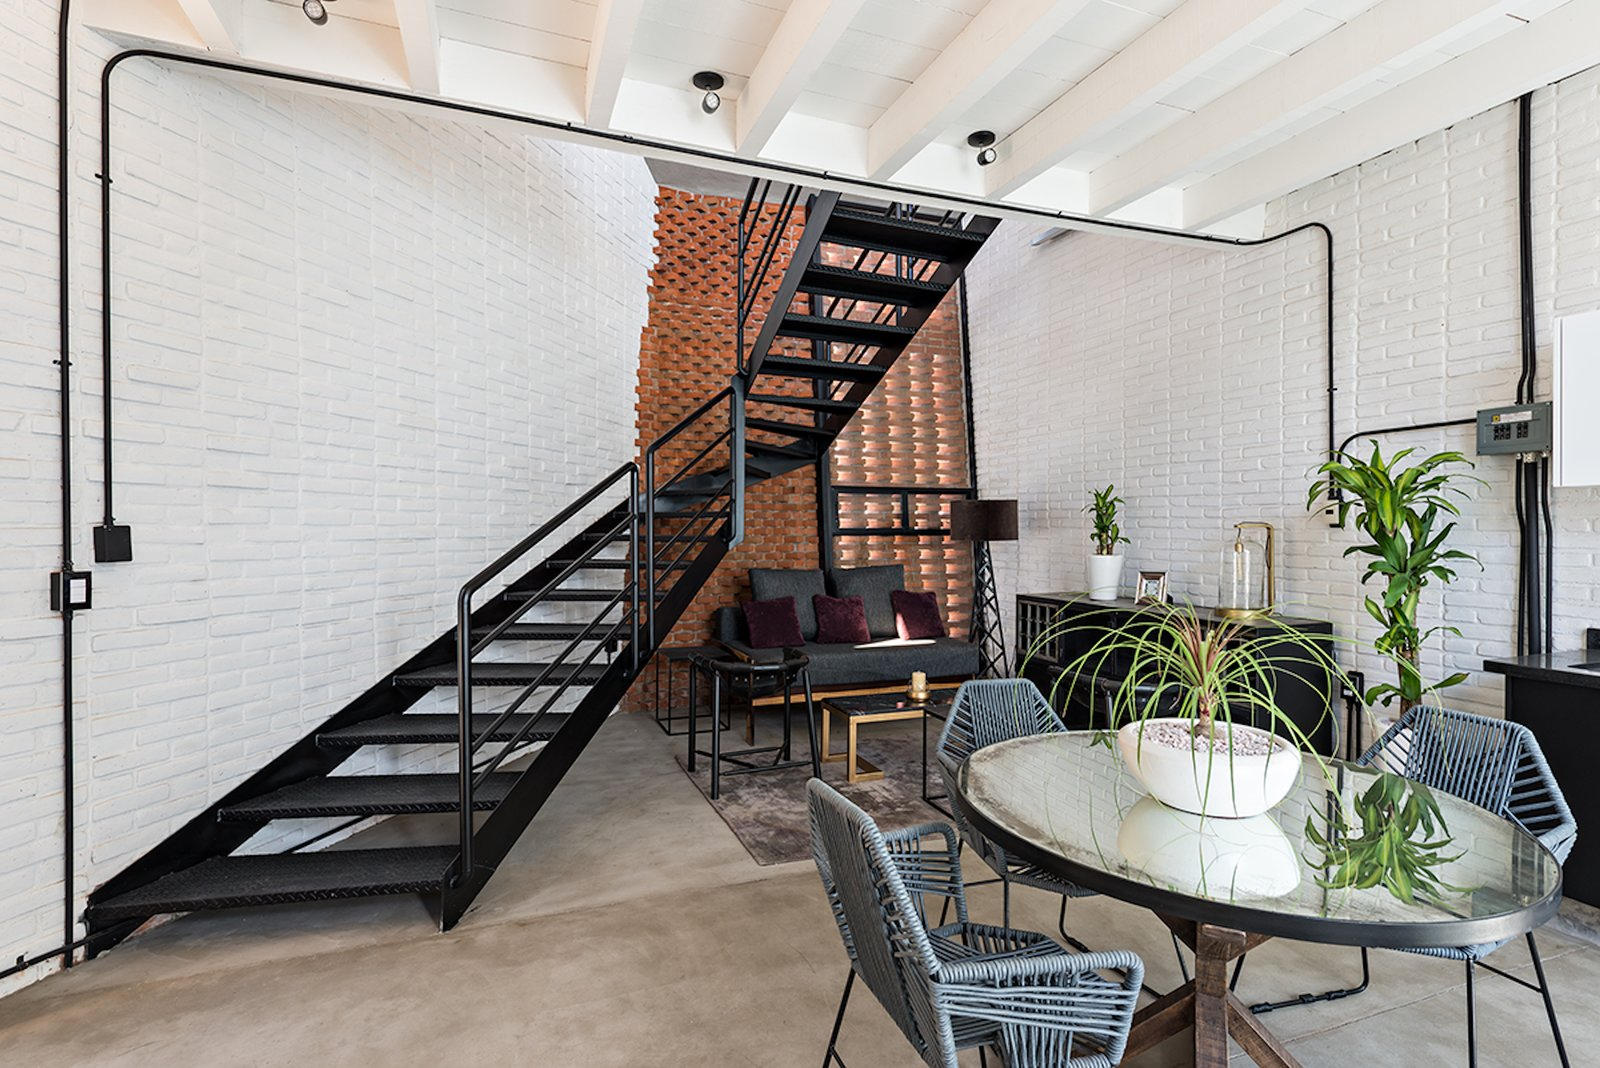 Staircase, Metal Tread, and Metal Railing A sculptural metal staircase leads up from the open common area to the mezzanine bedroom.    Photo 5 of 14 in Extruded Red Bricks Create a Gorgeous, Geometric Mexican Home